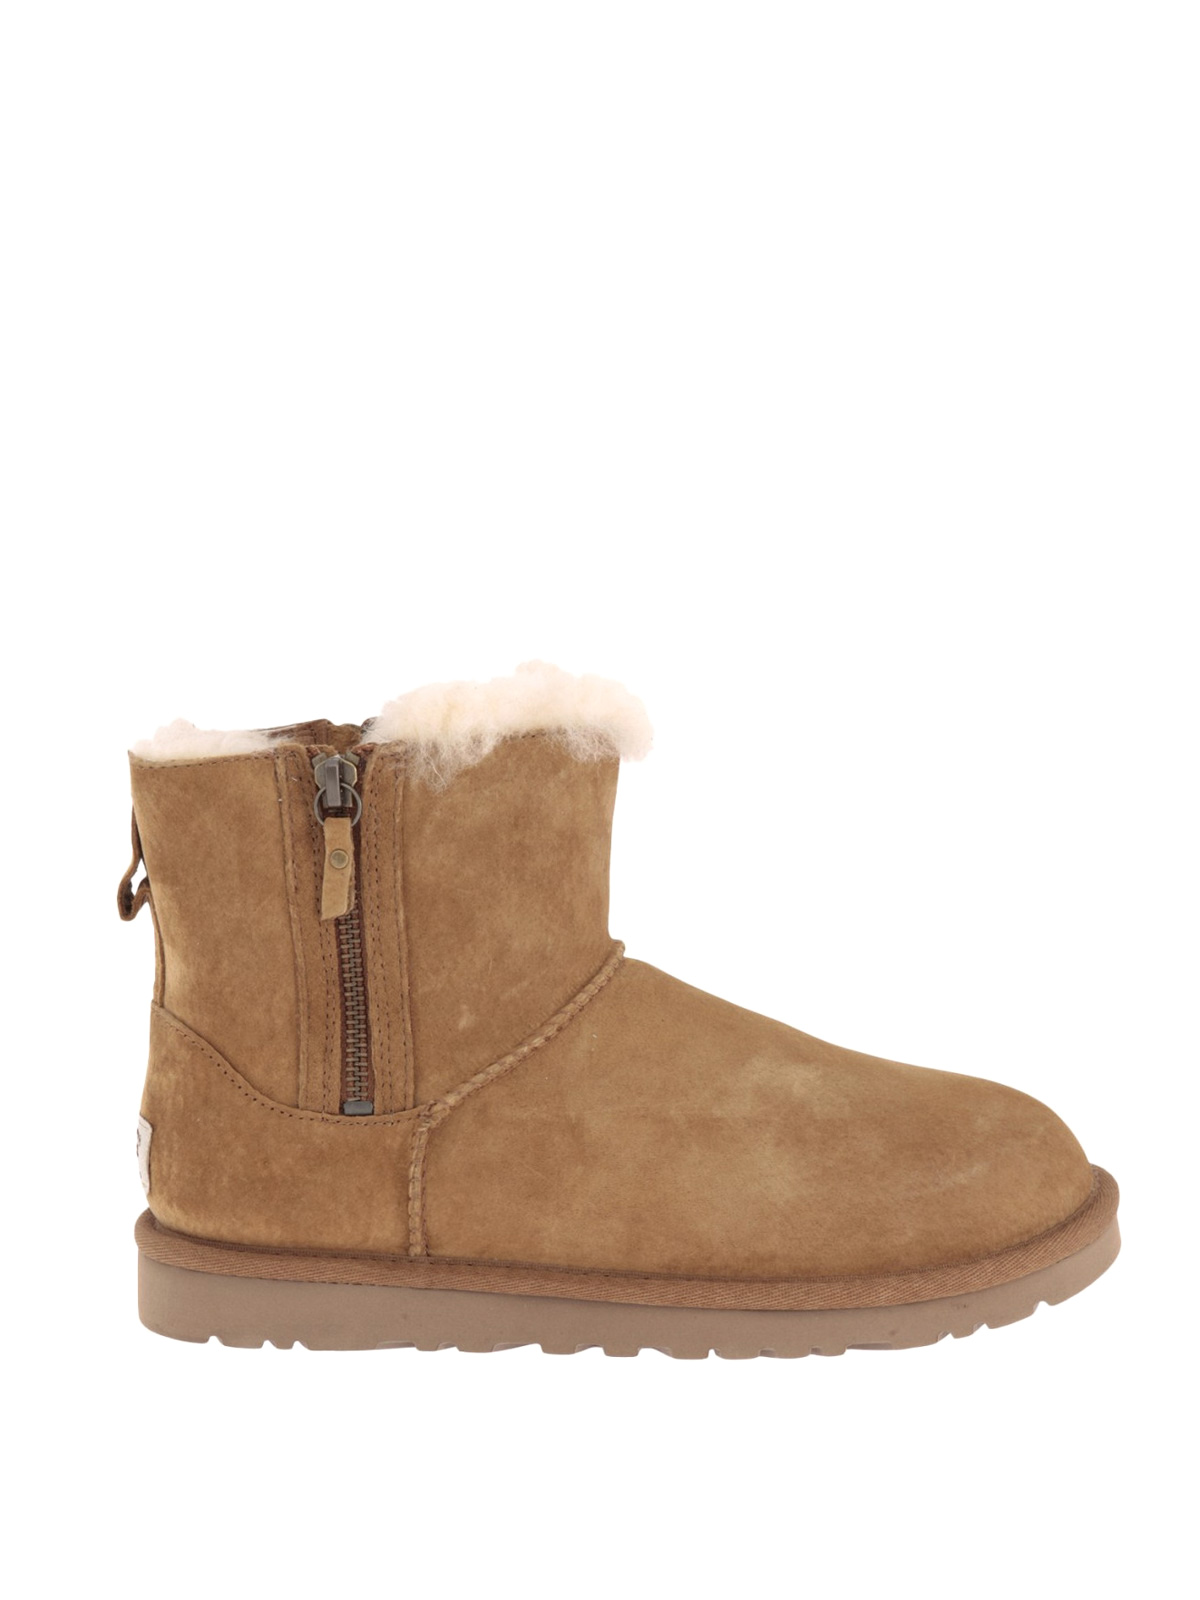 Ugg Classic Mini double zip booties ankle boots